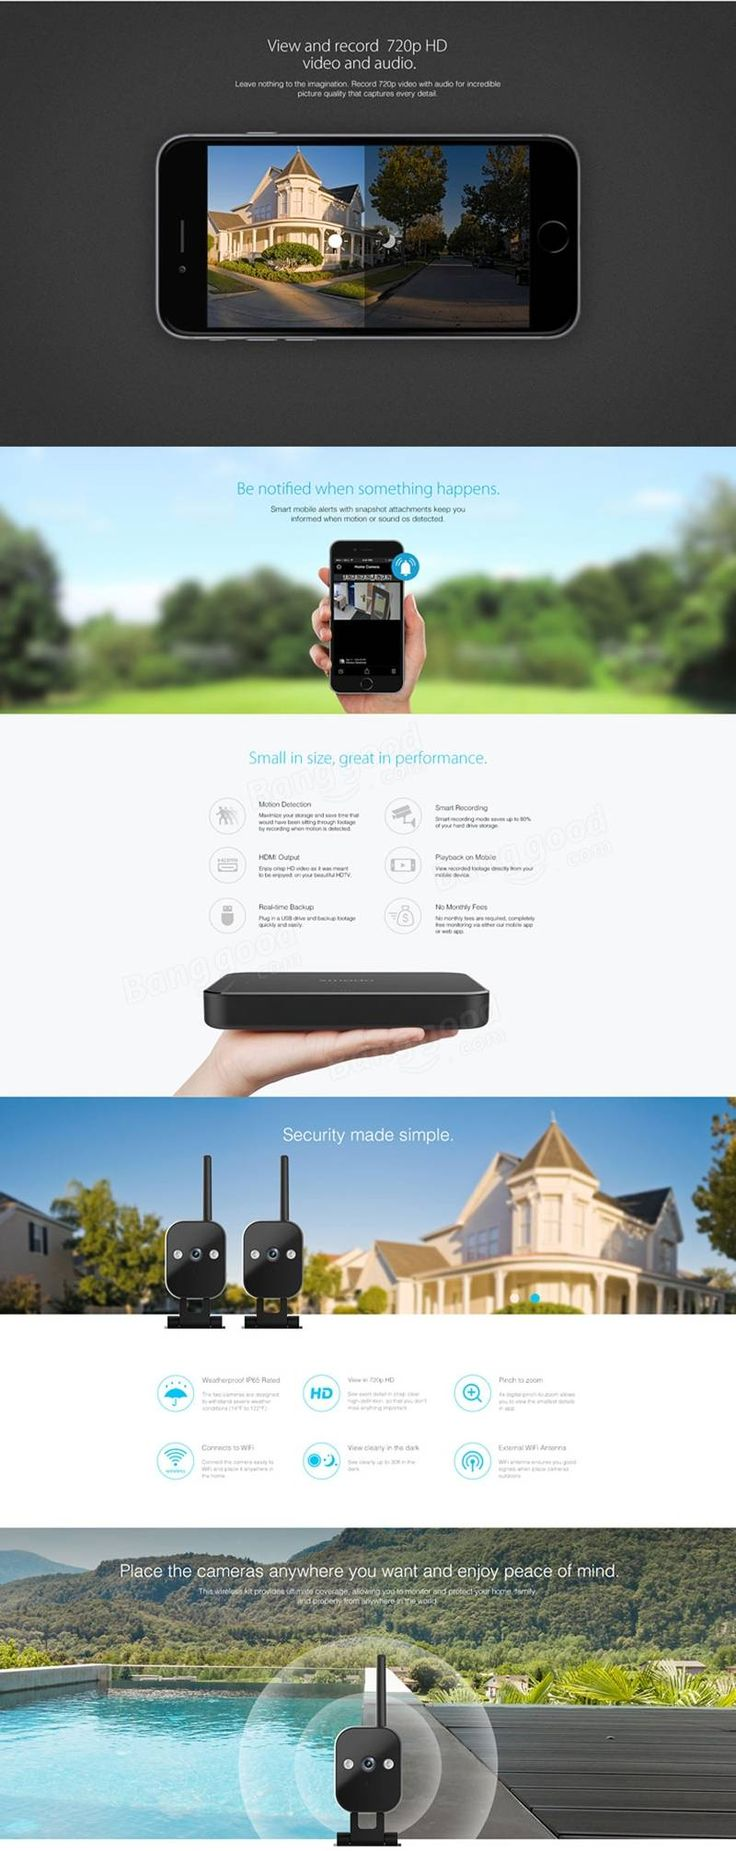 Zmodo 720P 4CH Smart Home Wireless Security Camera System Night Vision Outdoor Indoor With 1TB WD HDDTB HDD at Banggood